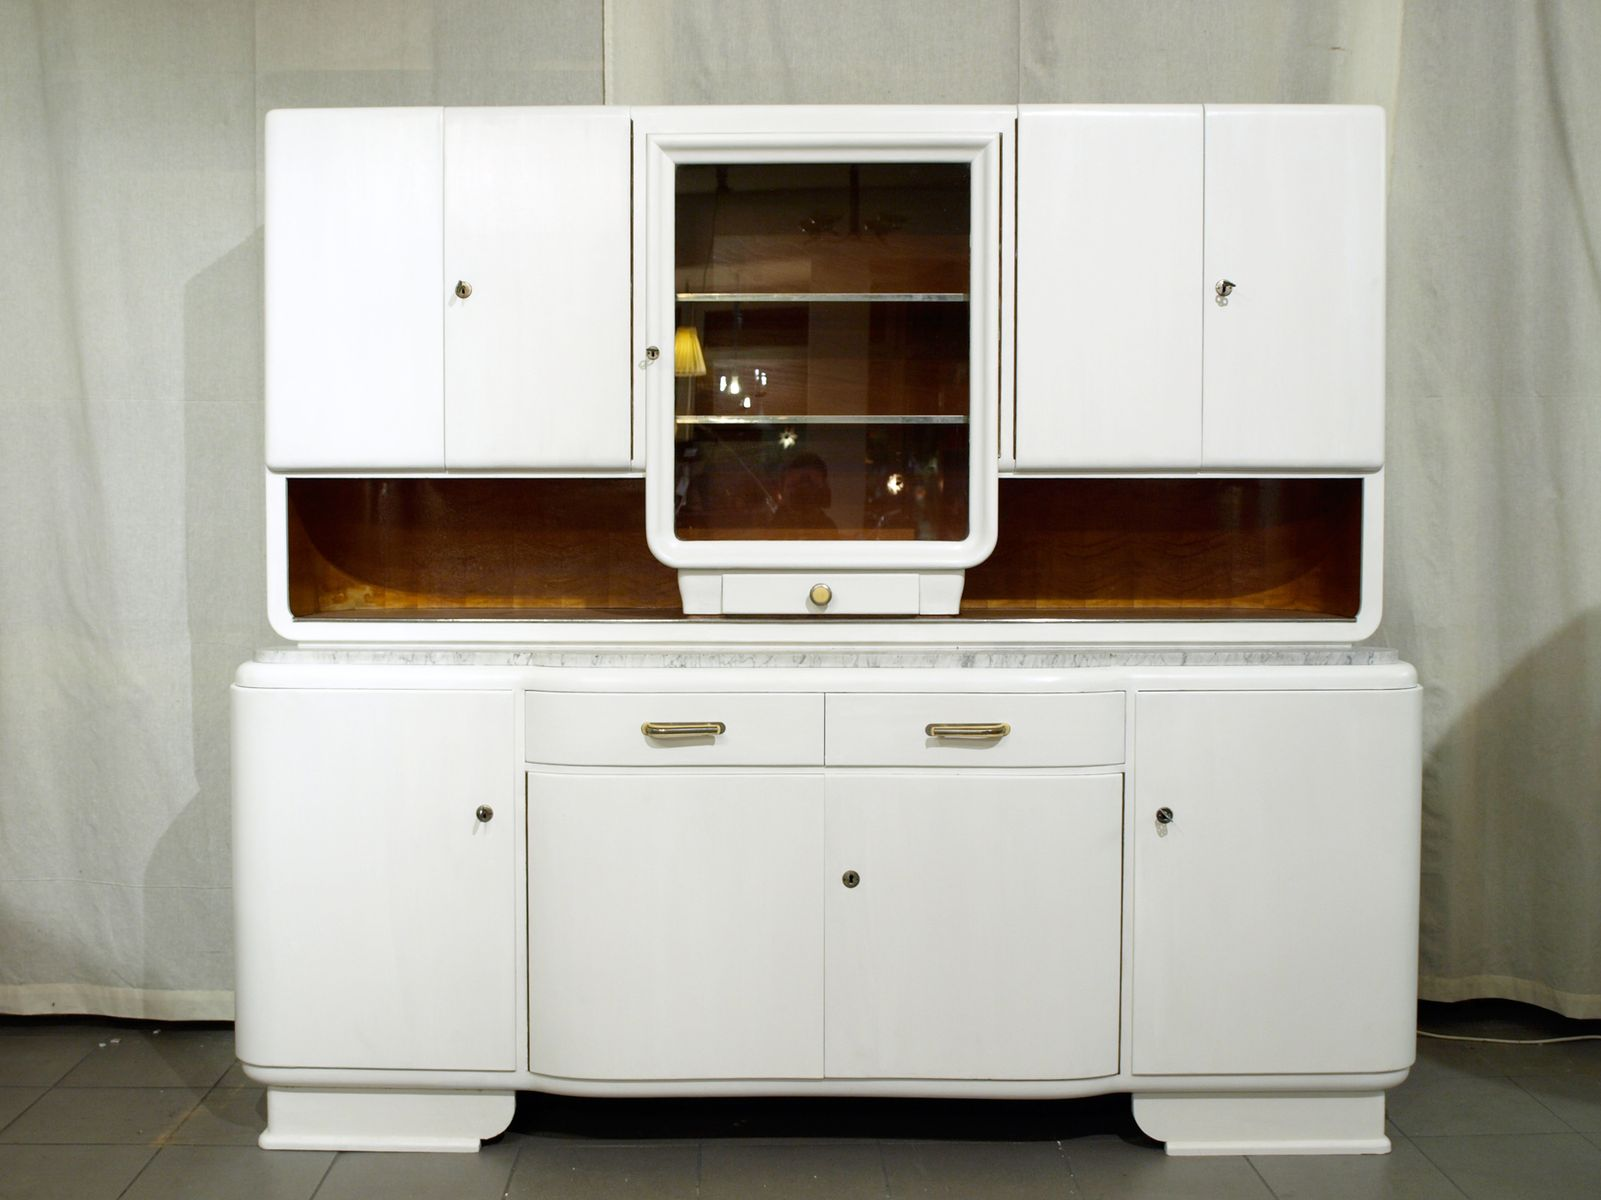 Vintage Kitchen Cabinet Vintage Kitchen Cabinet By Niestrath 1930s For Sale At Pamono